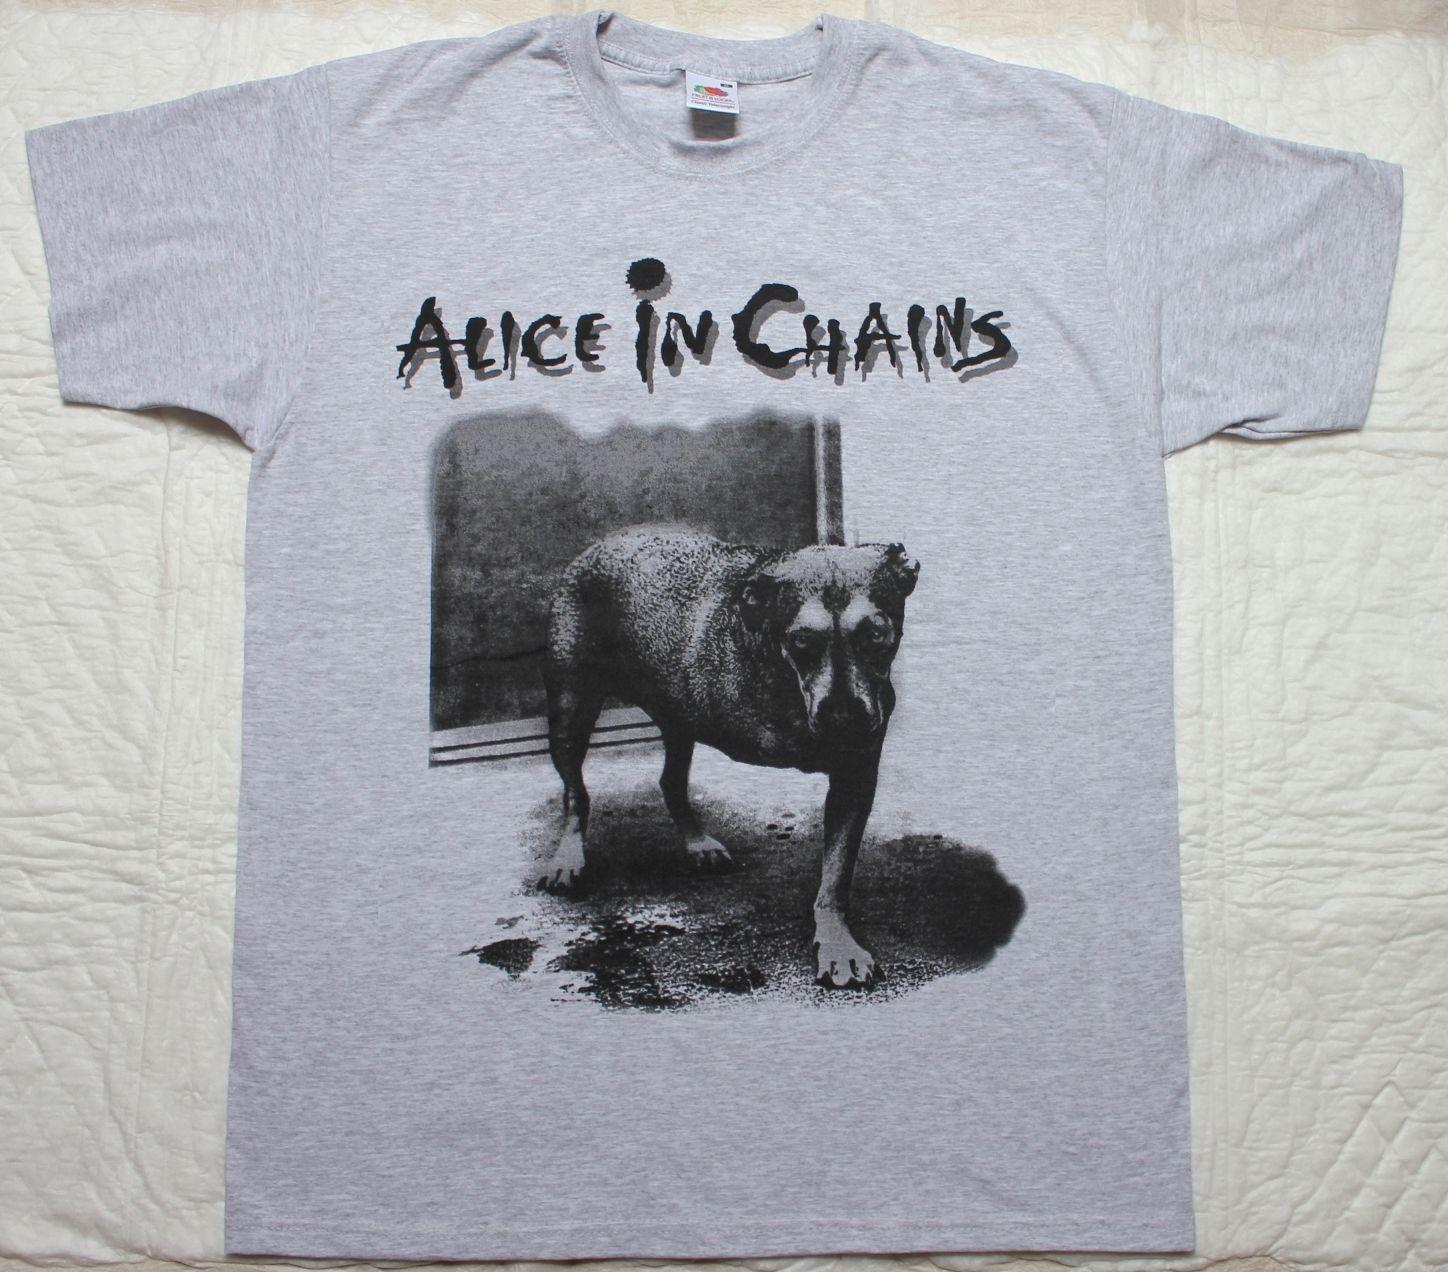 ALICE IN CHAINS DOG GRUNGE SOUNDGARDEN MOTHER LOVE BONE NIRVANA NEW GREY T-SHIRT Men Women Unisex Fashion tshirt Free Shipping